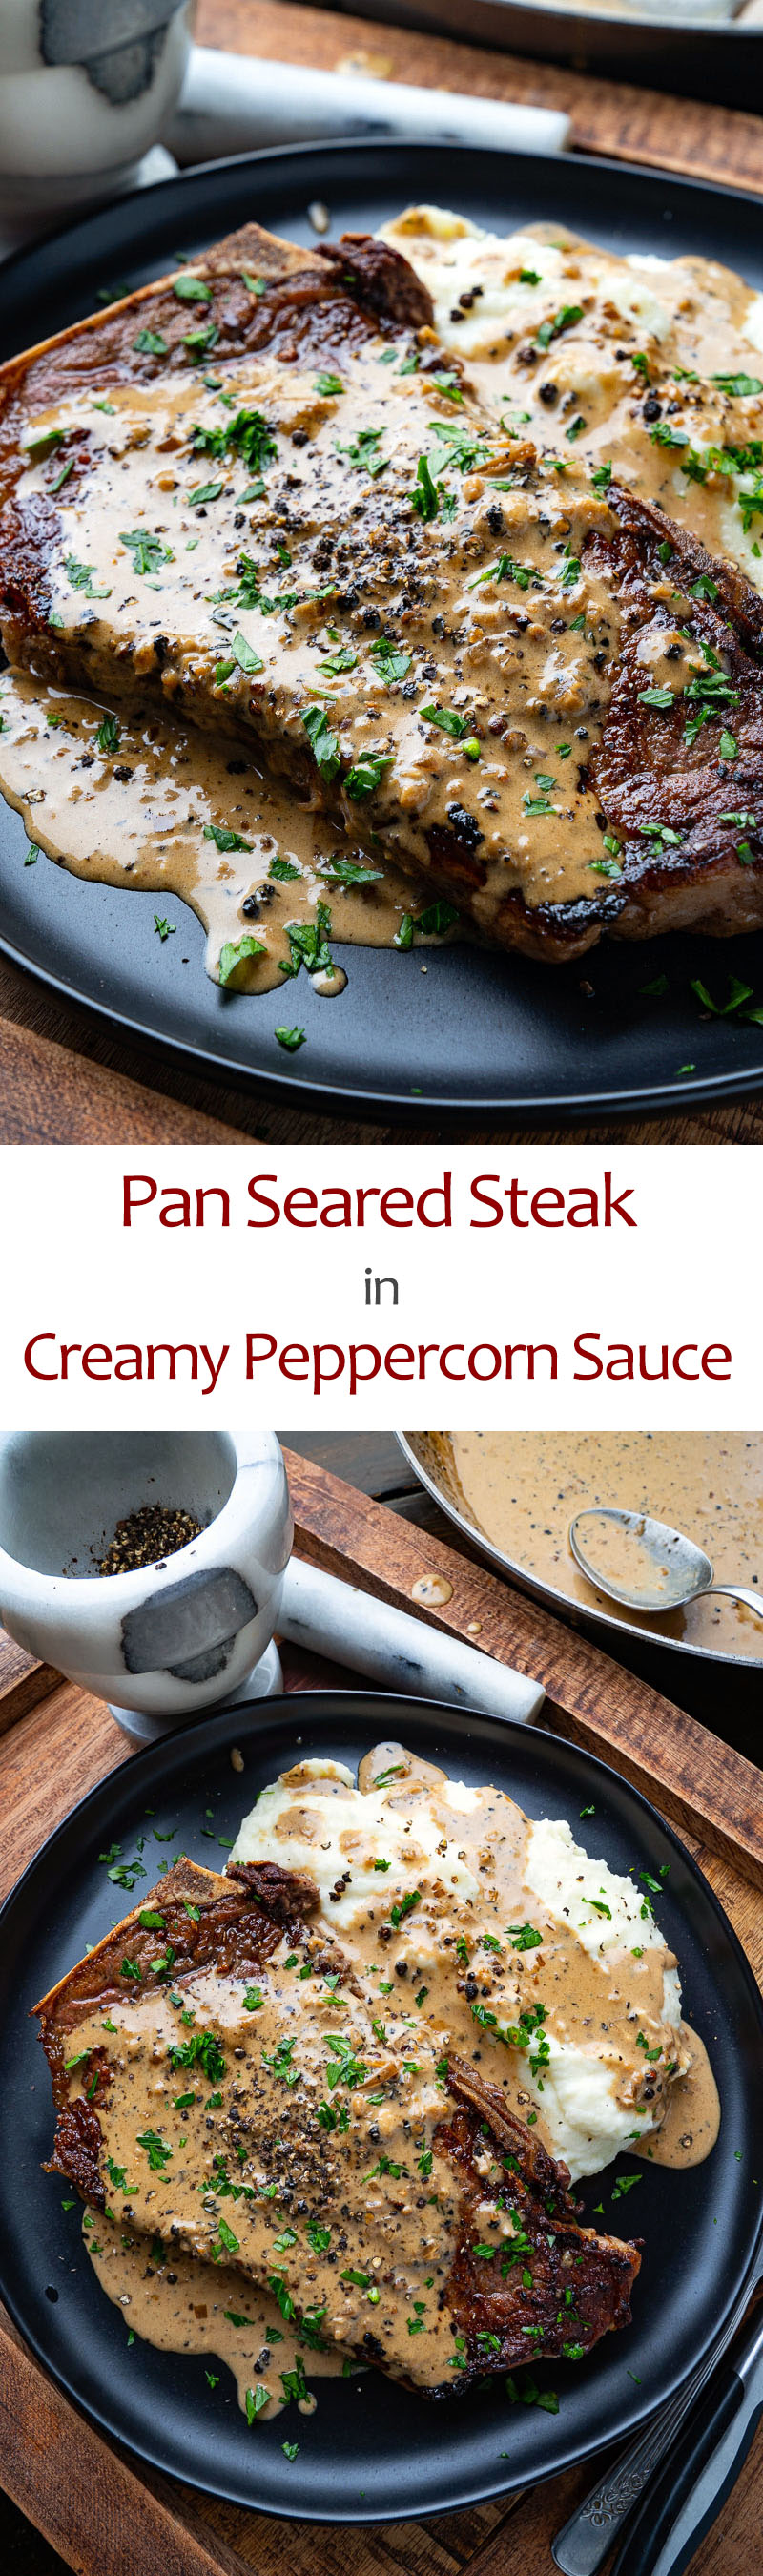 Pan Seared Steak in Creamy Peppercorn Sauce